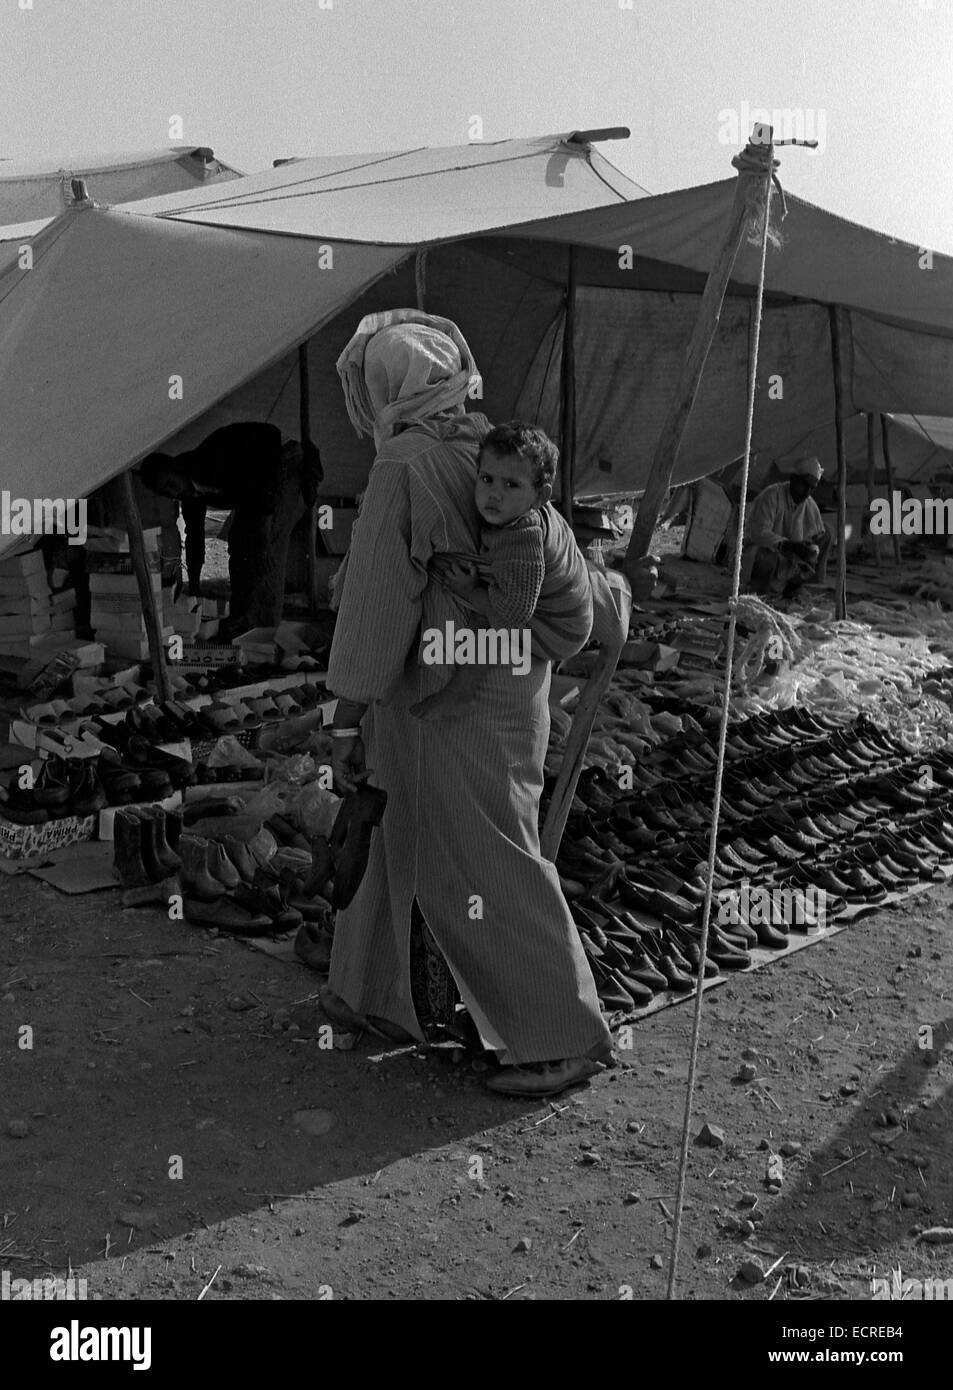 MIDDLE ATLAS, MOROCCO - JULY 1979: A woman carries her child on her back, after having bought shoes in a Berber - Stock Image